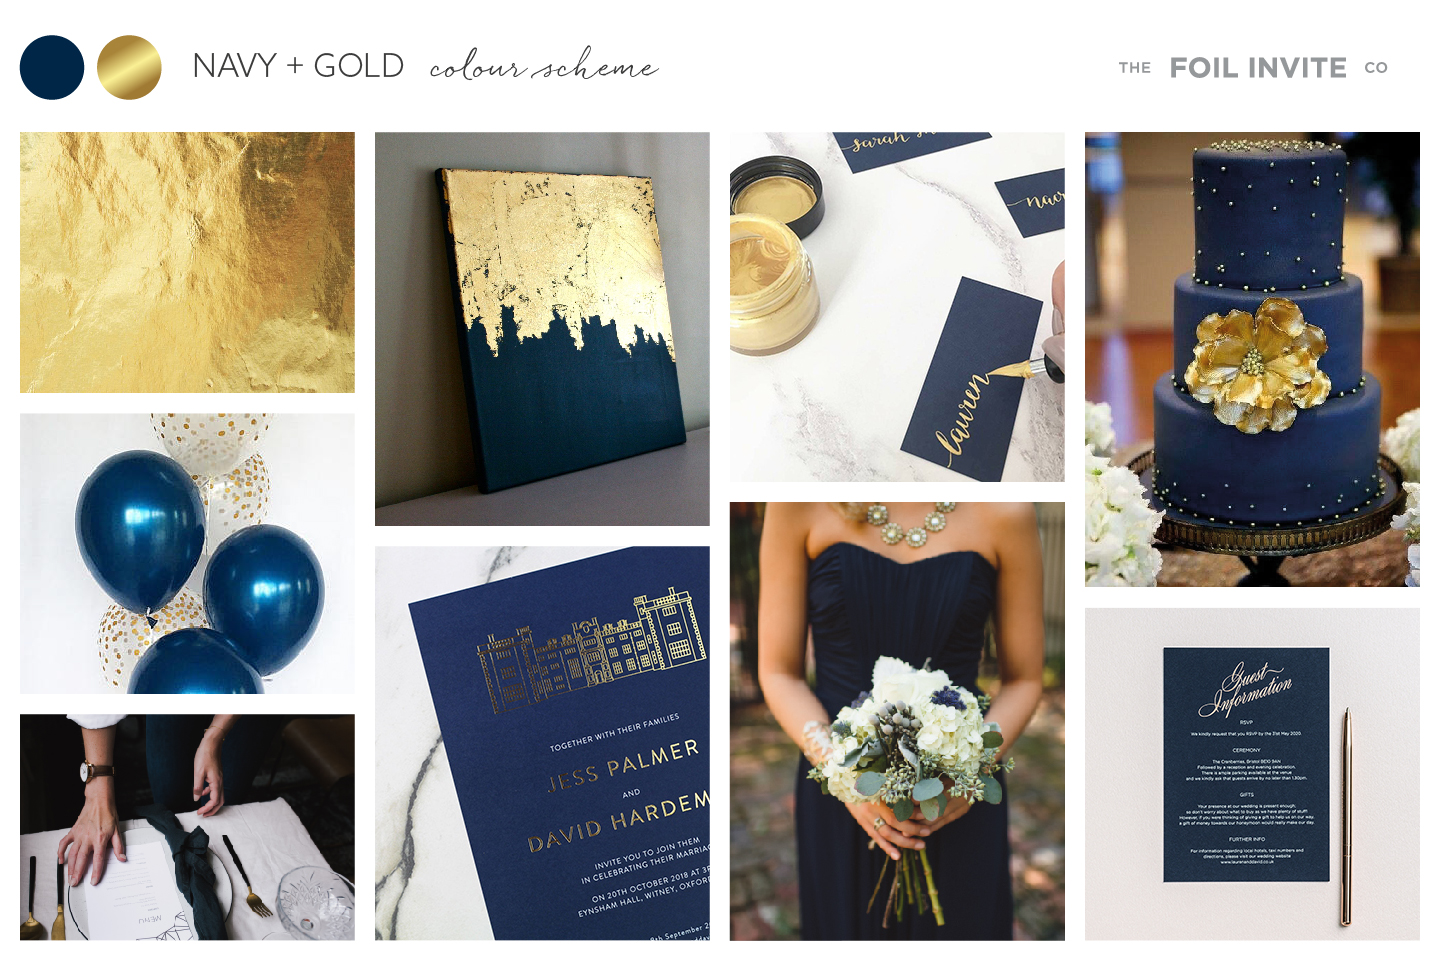 Navy and Gold Wedding Stationery Blog | Navy and Gold Wedding Invitations by The Foil Invite Company